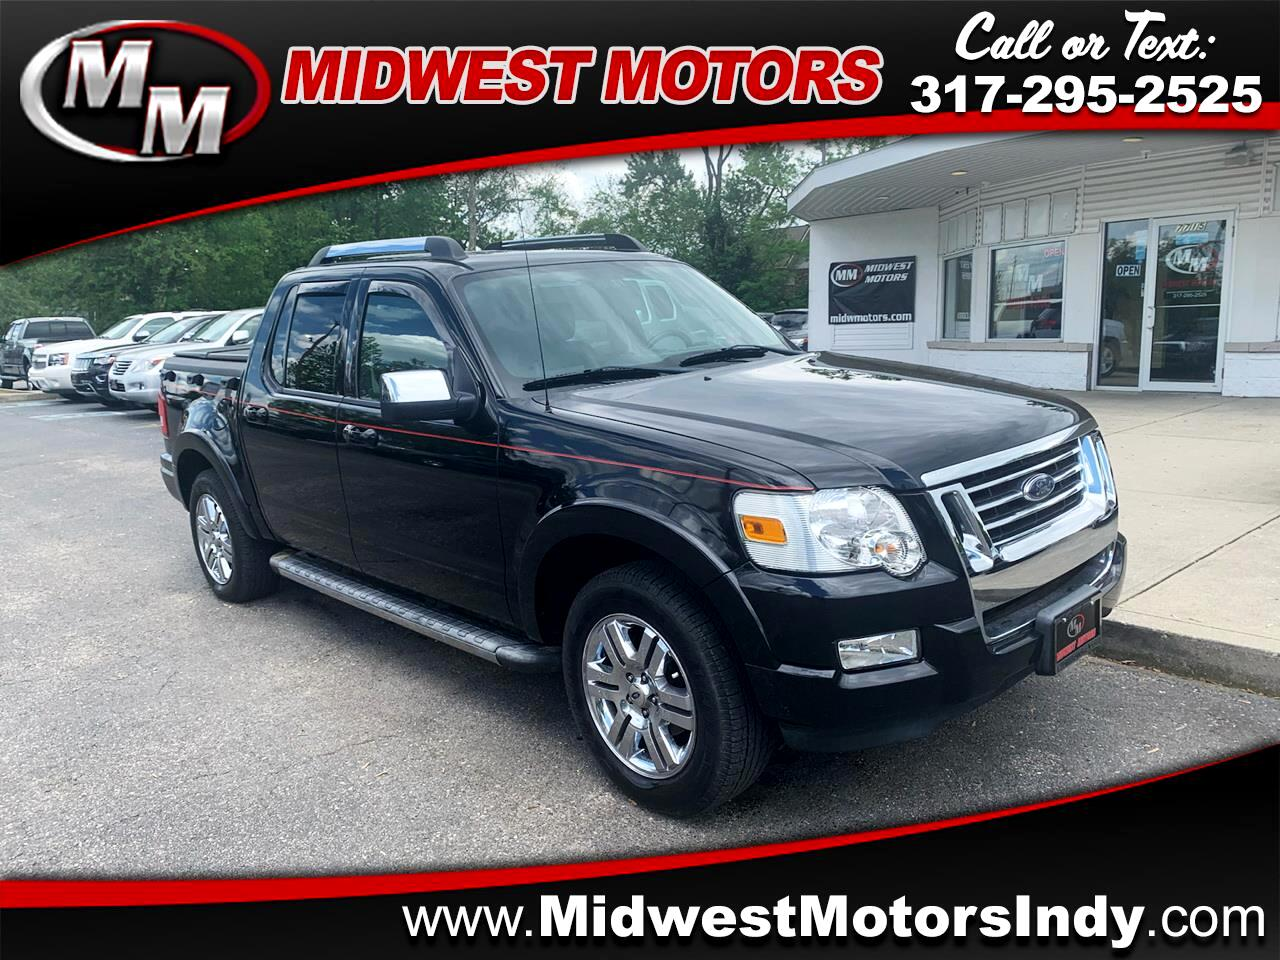 Ford Explorer Sport Trac Limited 4.0L 4WD 2008